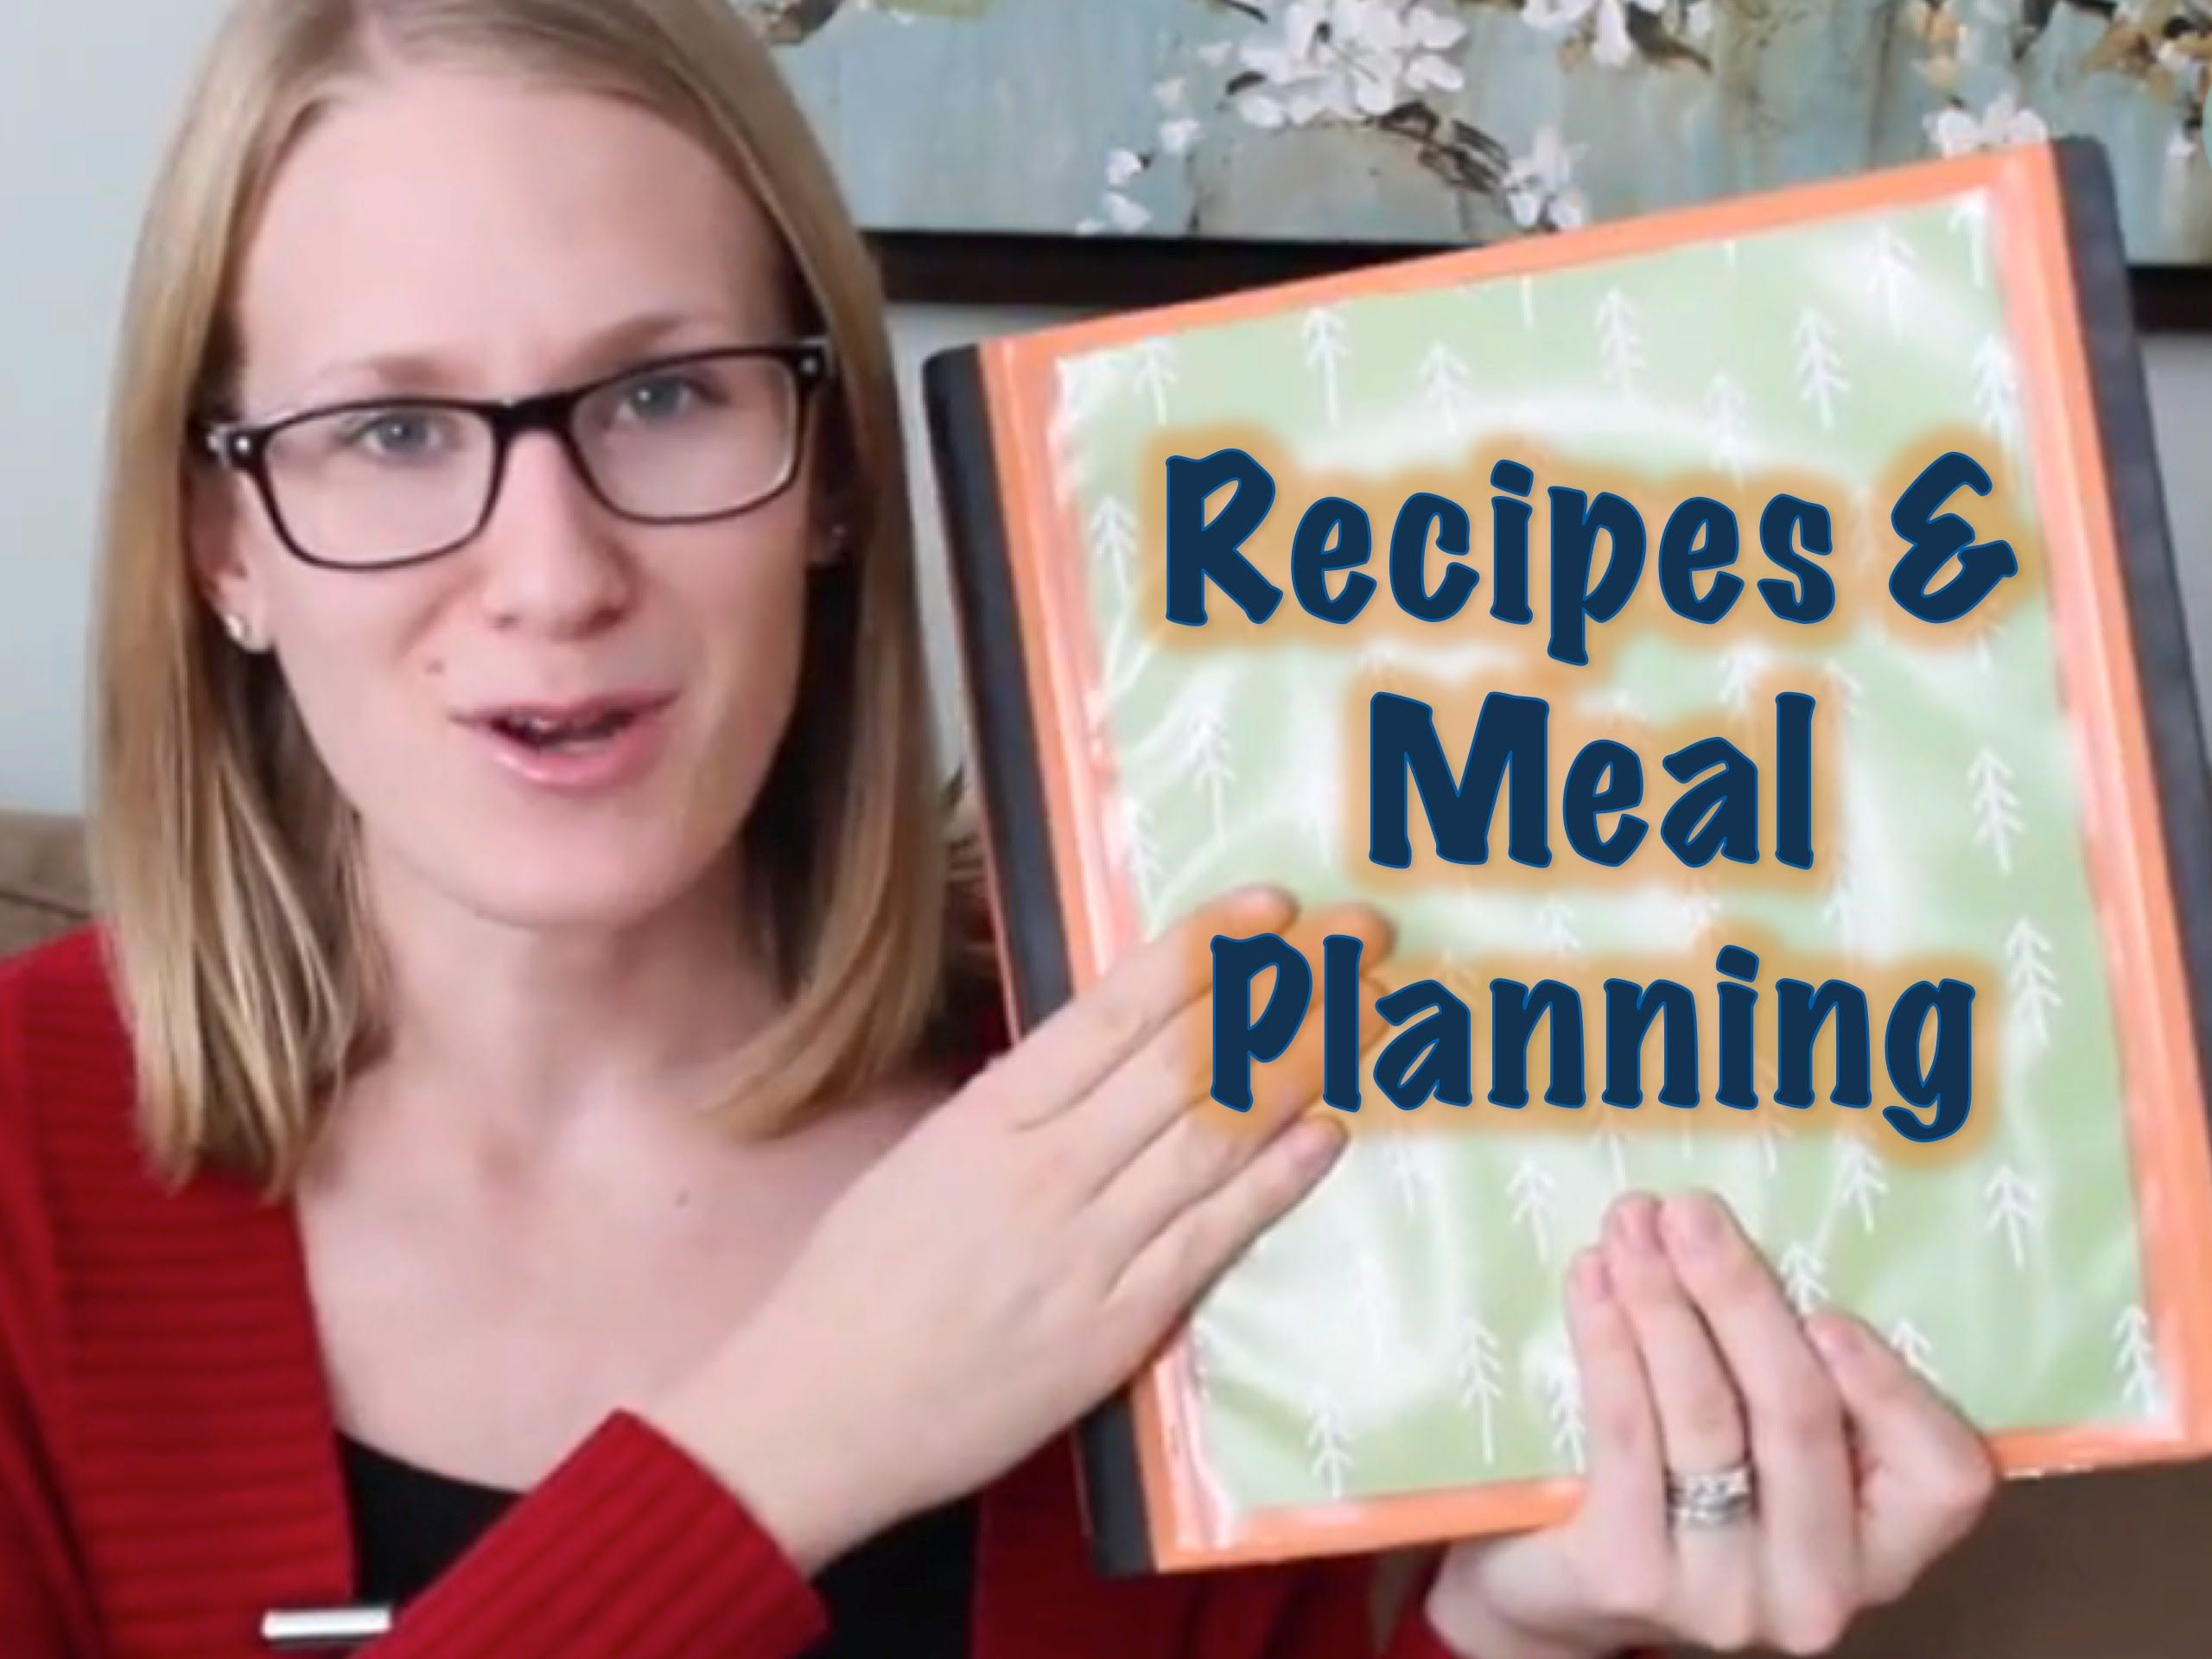 Meal Planning And Recipe Organization Youtube Recipe Organization How To Plan Meal Planning